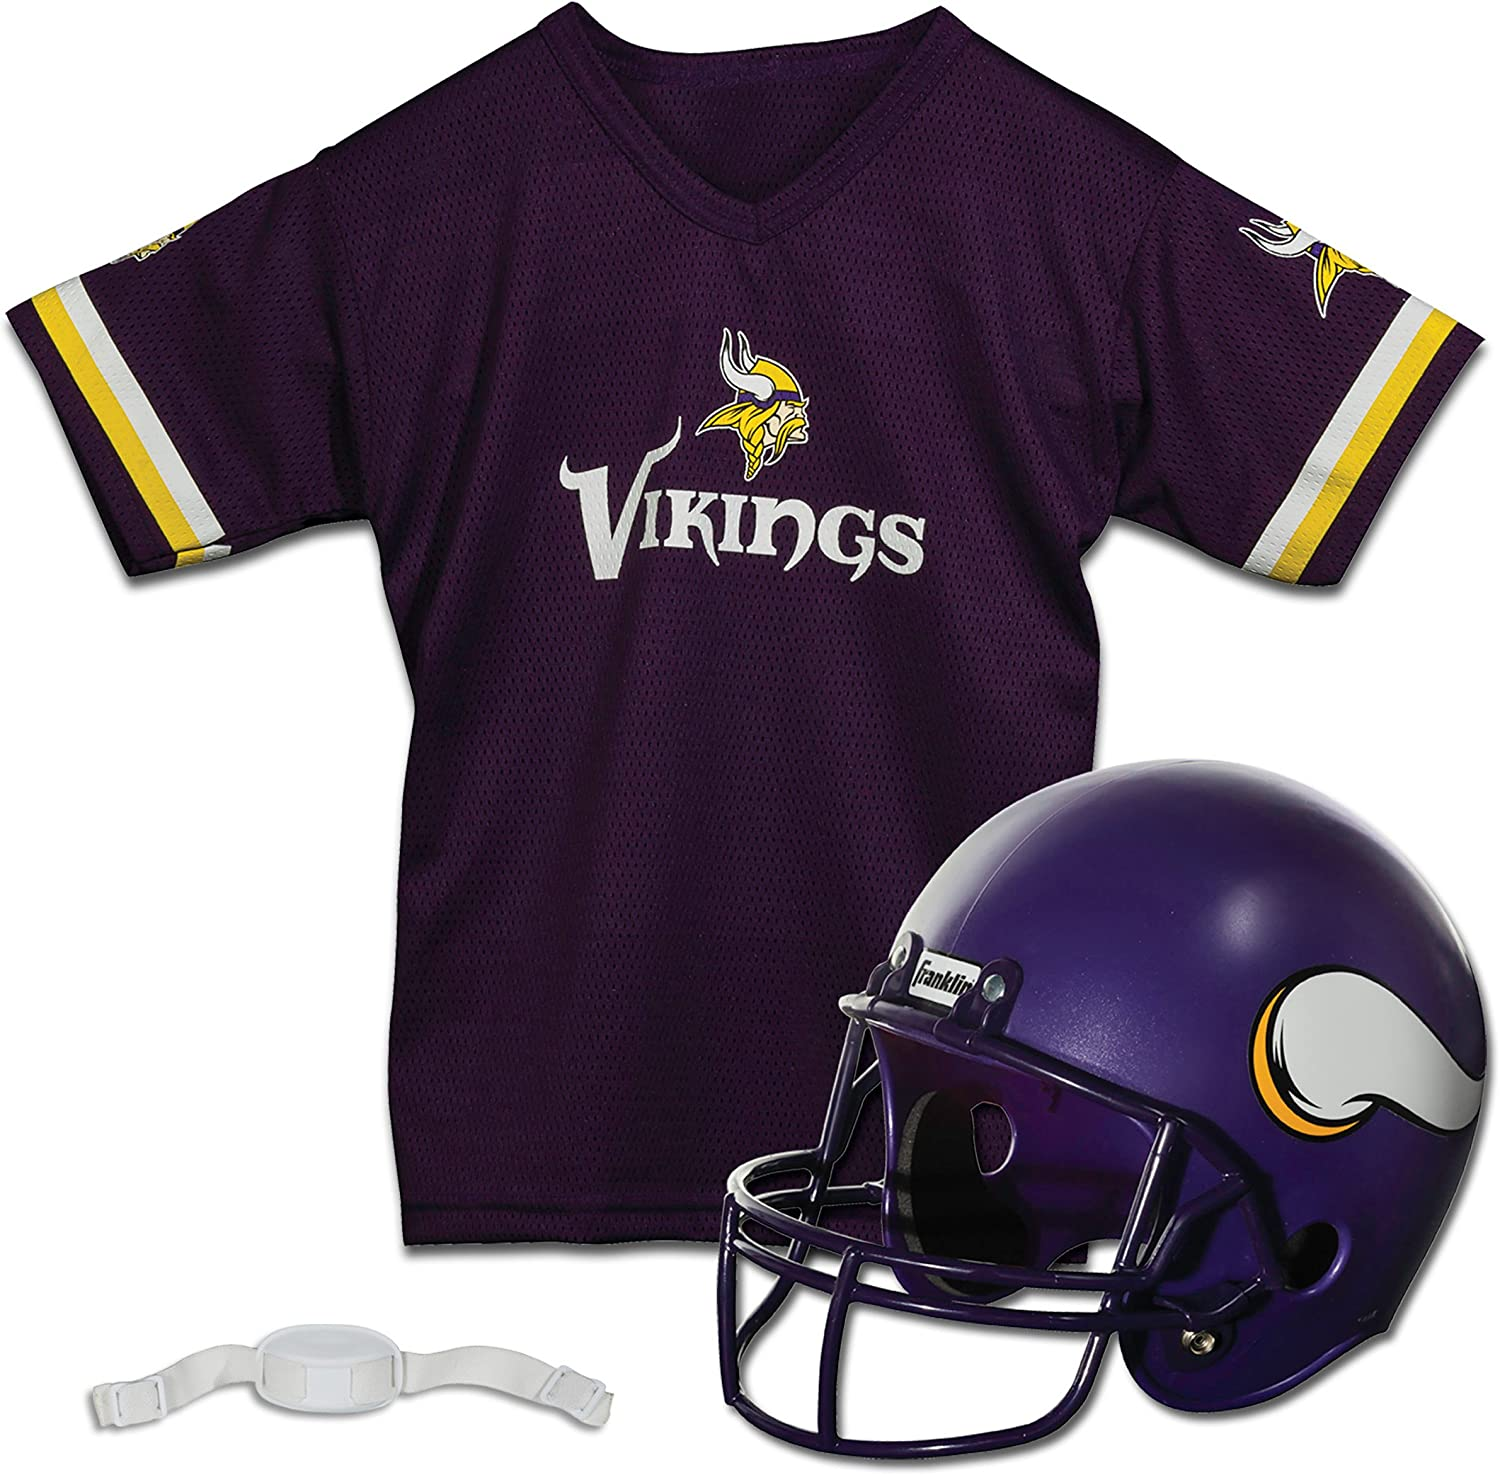 Franklin Sports Minnesota Vikings Kids Football Helmet and Jersey Set - NFL Youth Football Uniform Costume - Helmet, Jersey, Chinstrap - Youth M